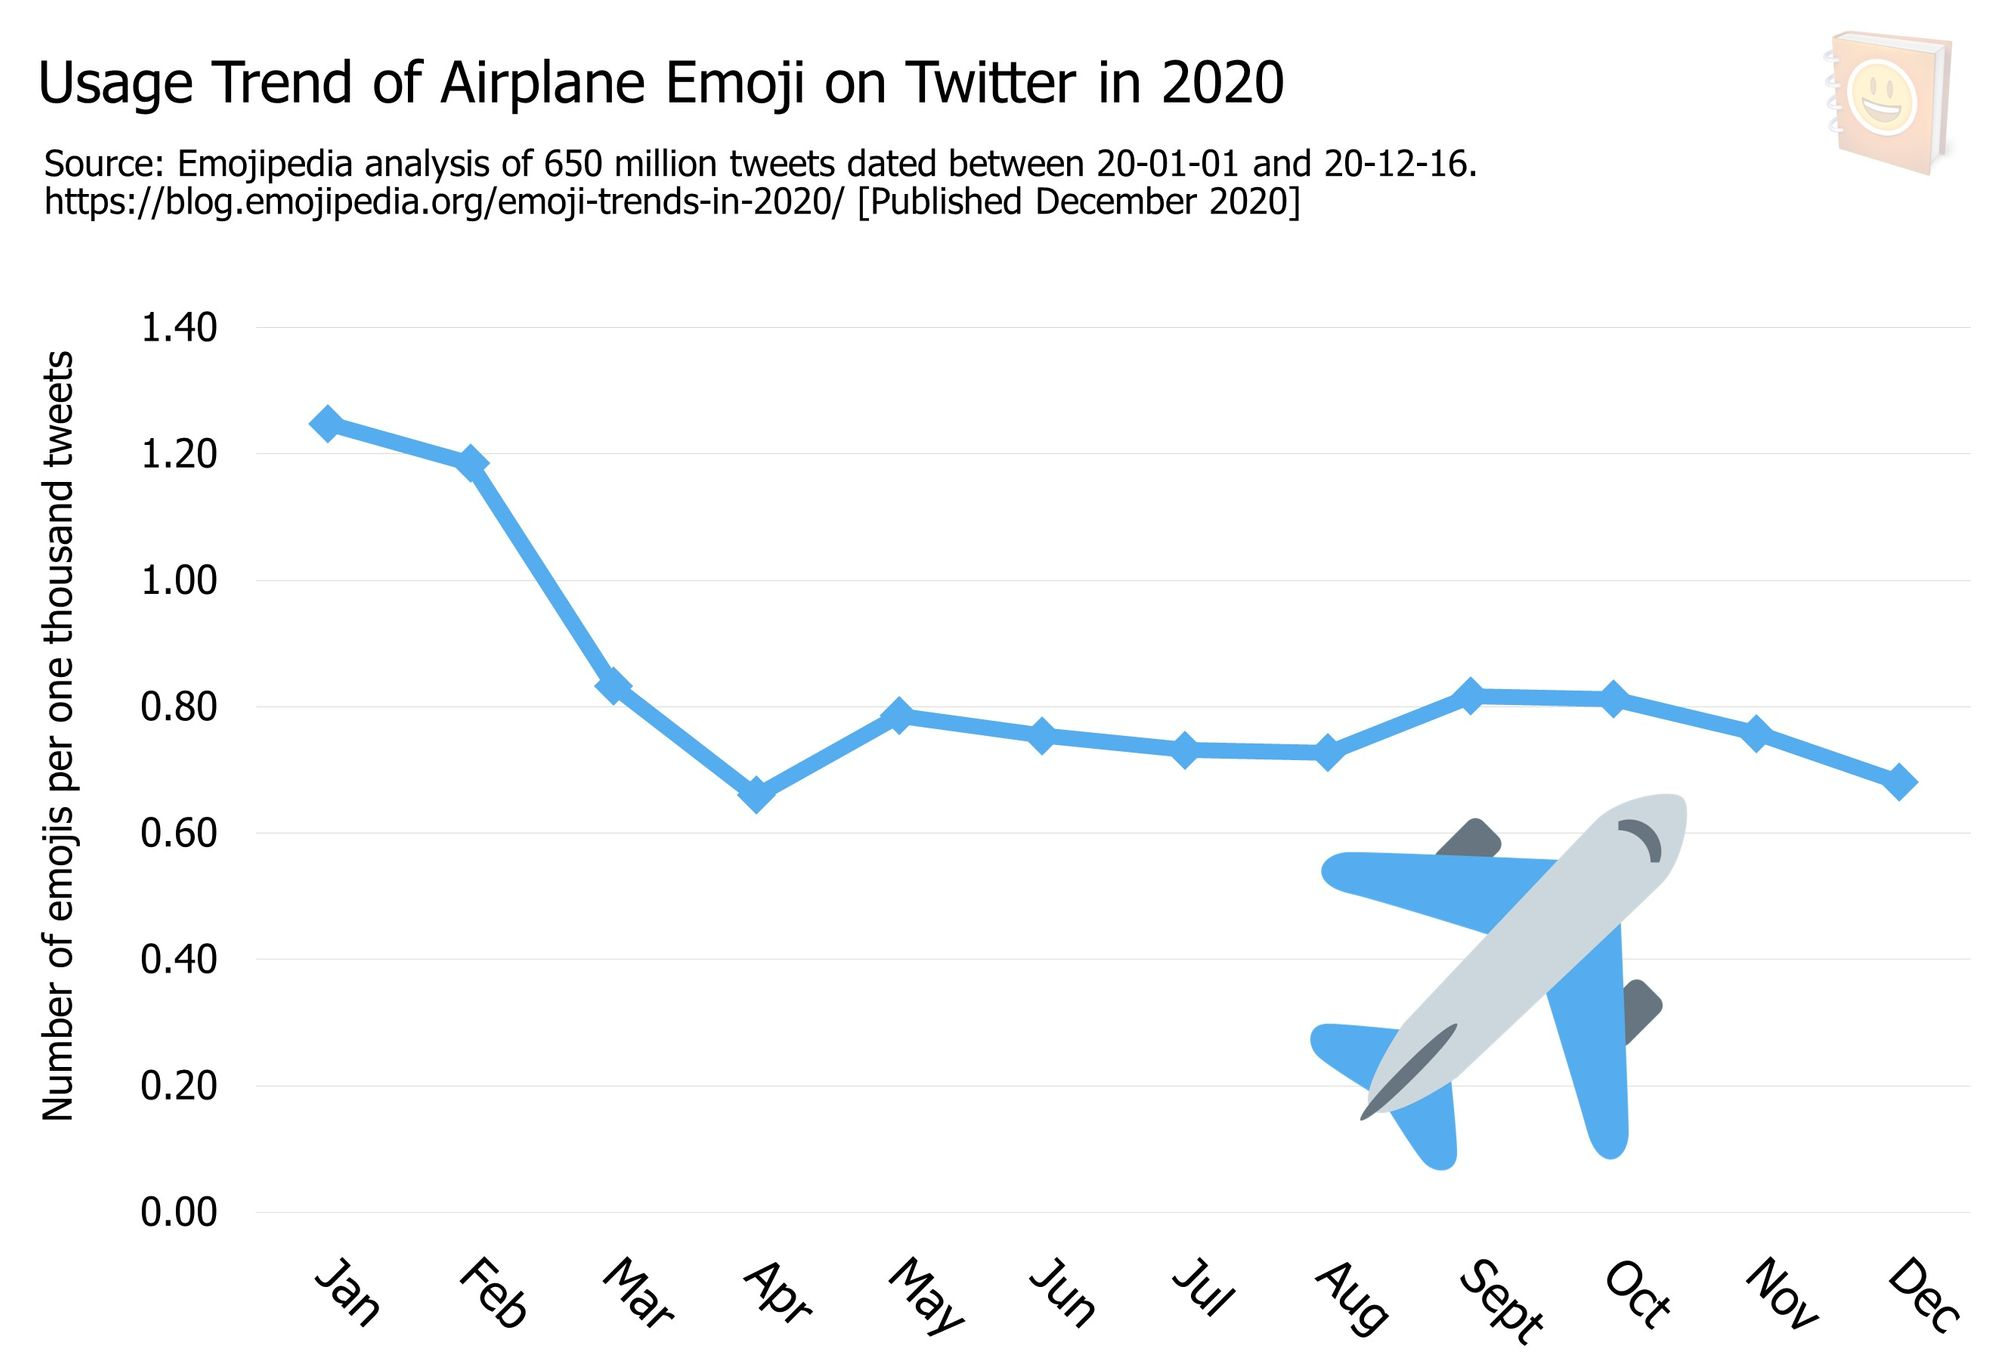 Emoji-Trends-In-2020---Usage-Trend-of-Airplane-Emoji-on-Twitter-in-2020